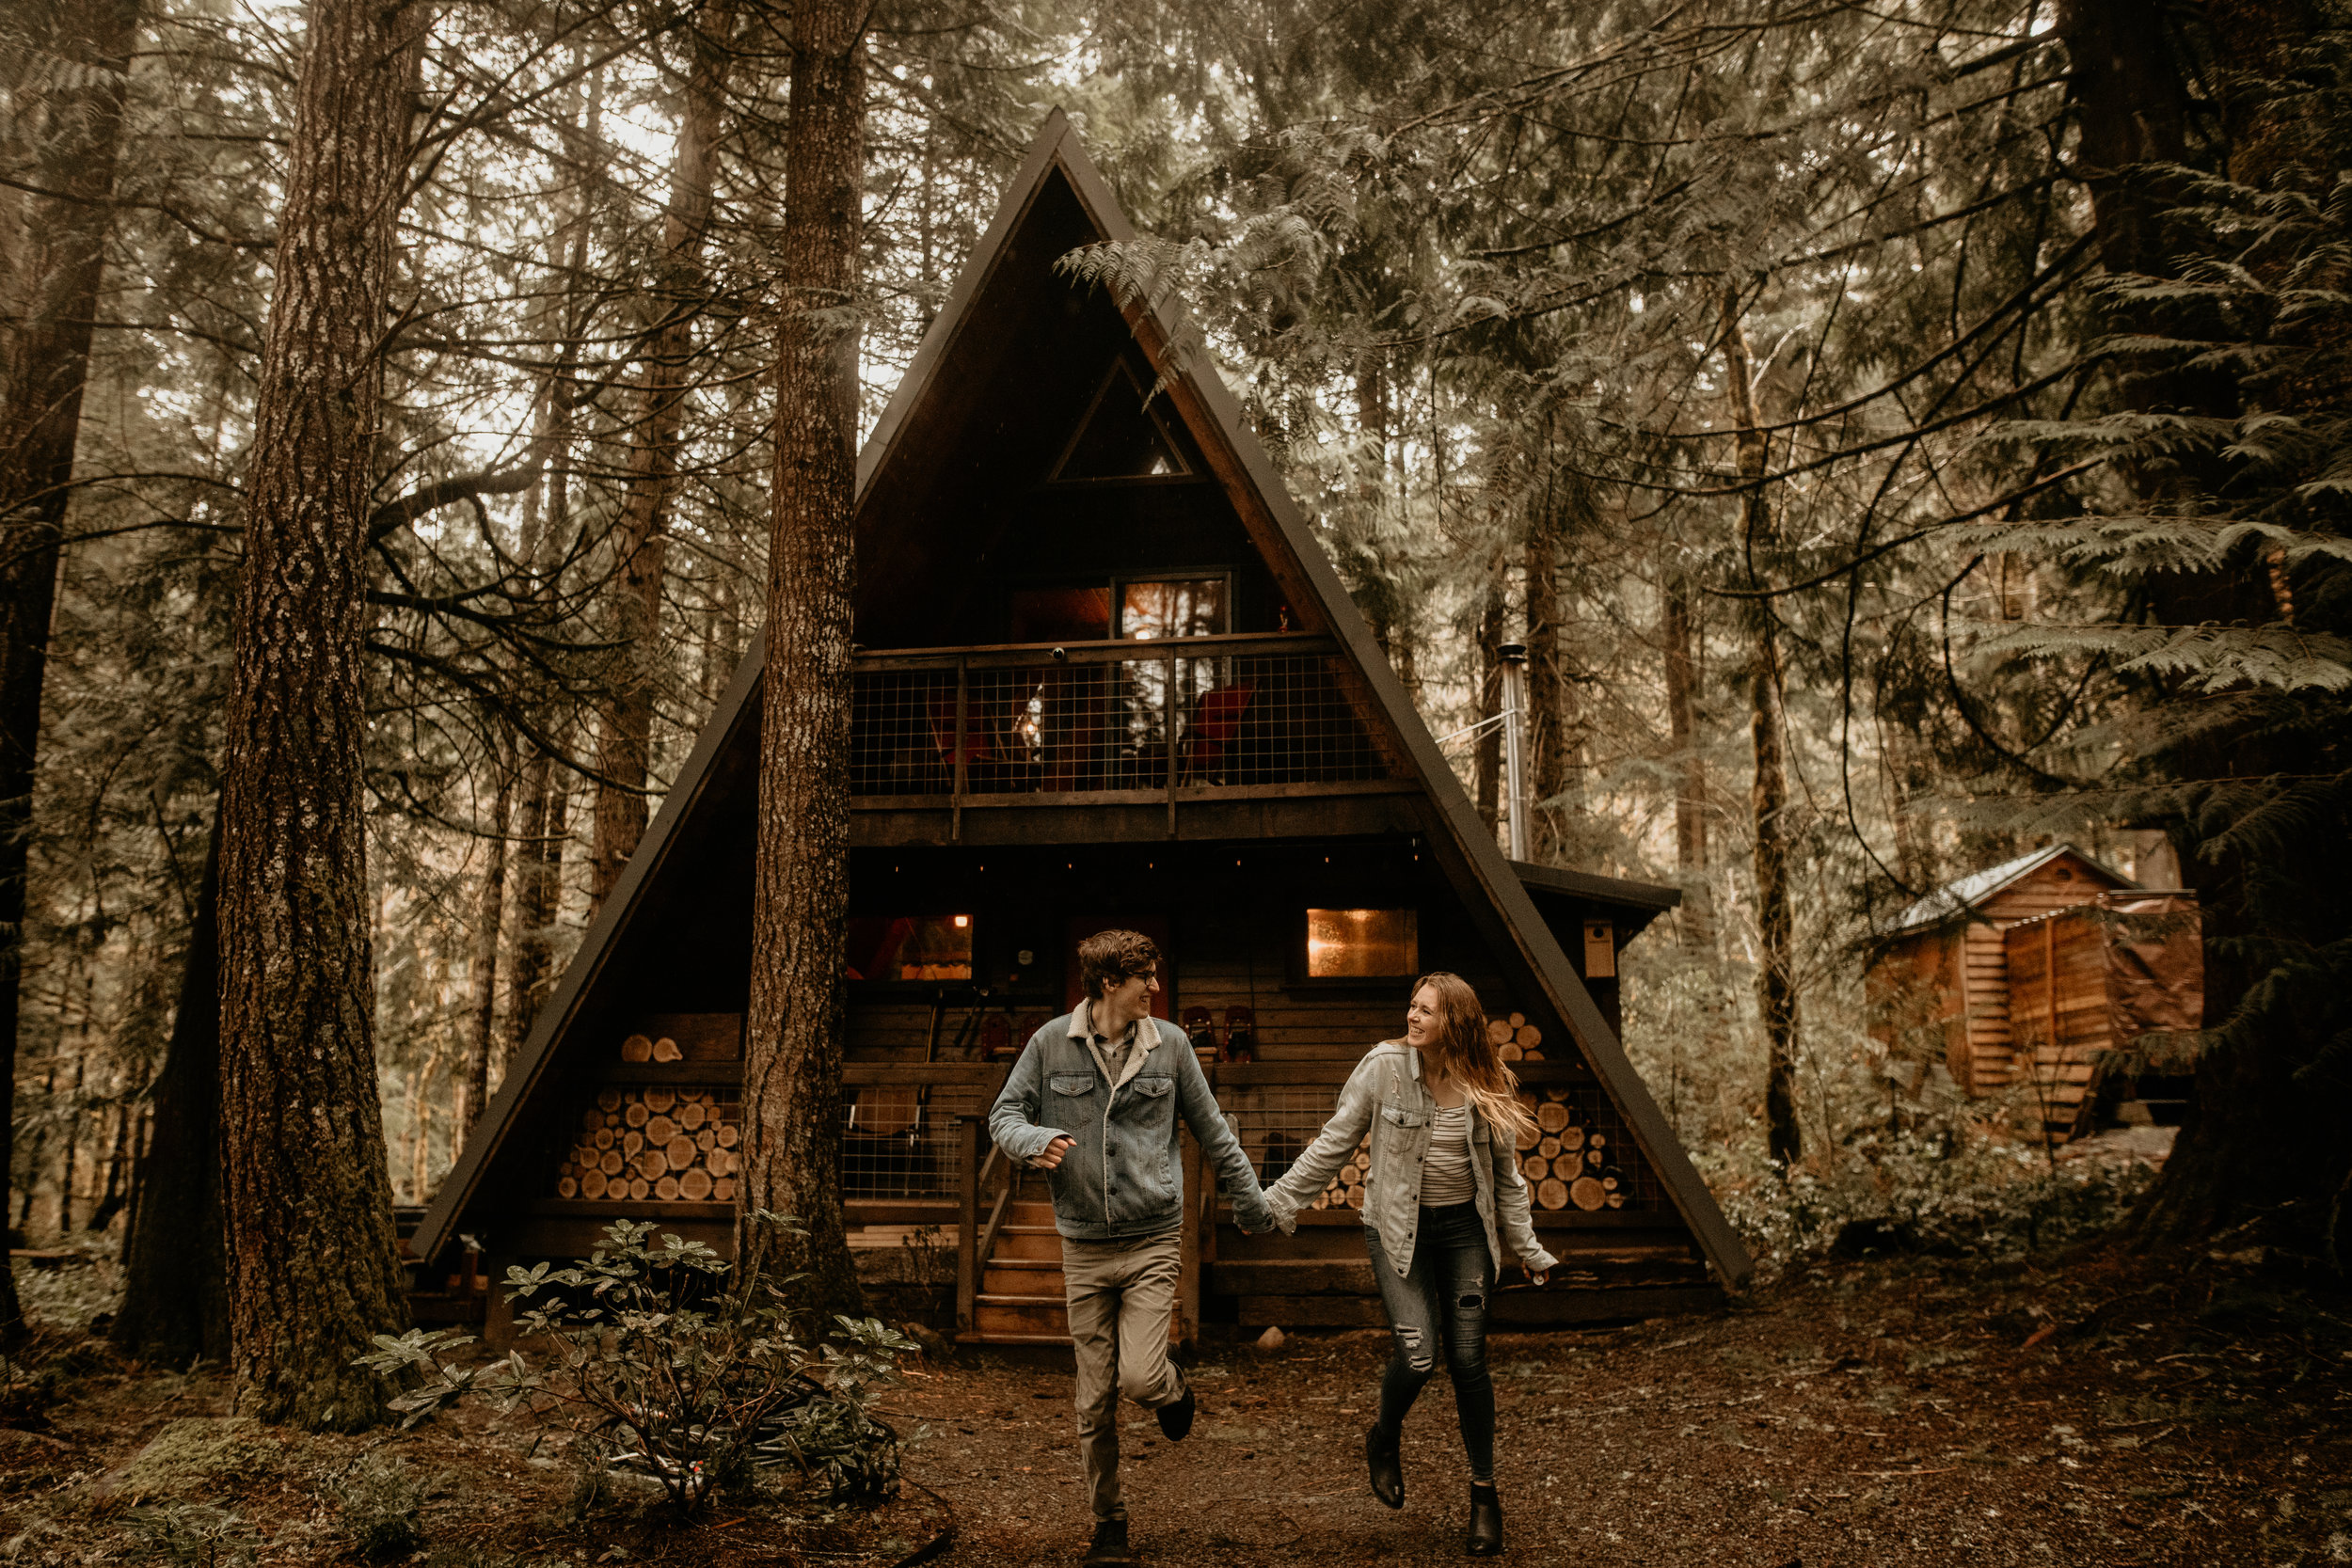 Mt rainier a-frame, mt rainier national park, backwood cabin, little owl cabin, Seattle elopement photographer - pnw elopement photographer - tacoma elopement photographer - Seattle wedding photographer - tacoma wedding photographer - pnw wedding photographer - hire wedding photographers in seattle - adventure wedding photographer - wedding photographer under $2000 - tacoma wedding photographers - elopement wedding photographer - elopement photographer - rattlesnake lake engagement photos